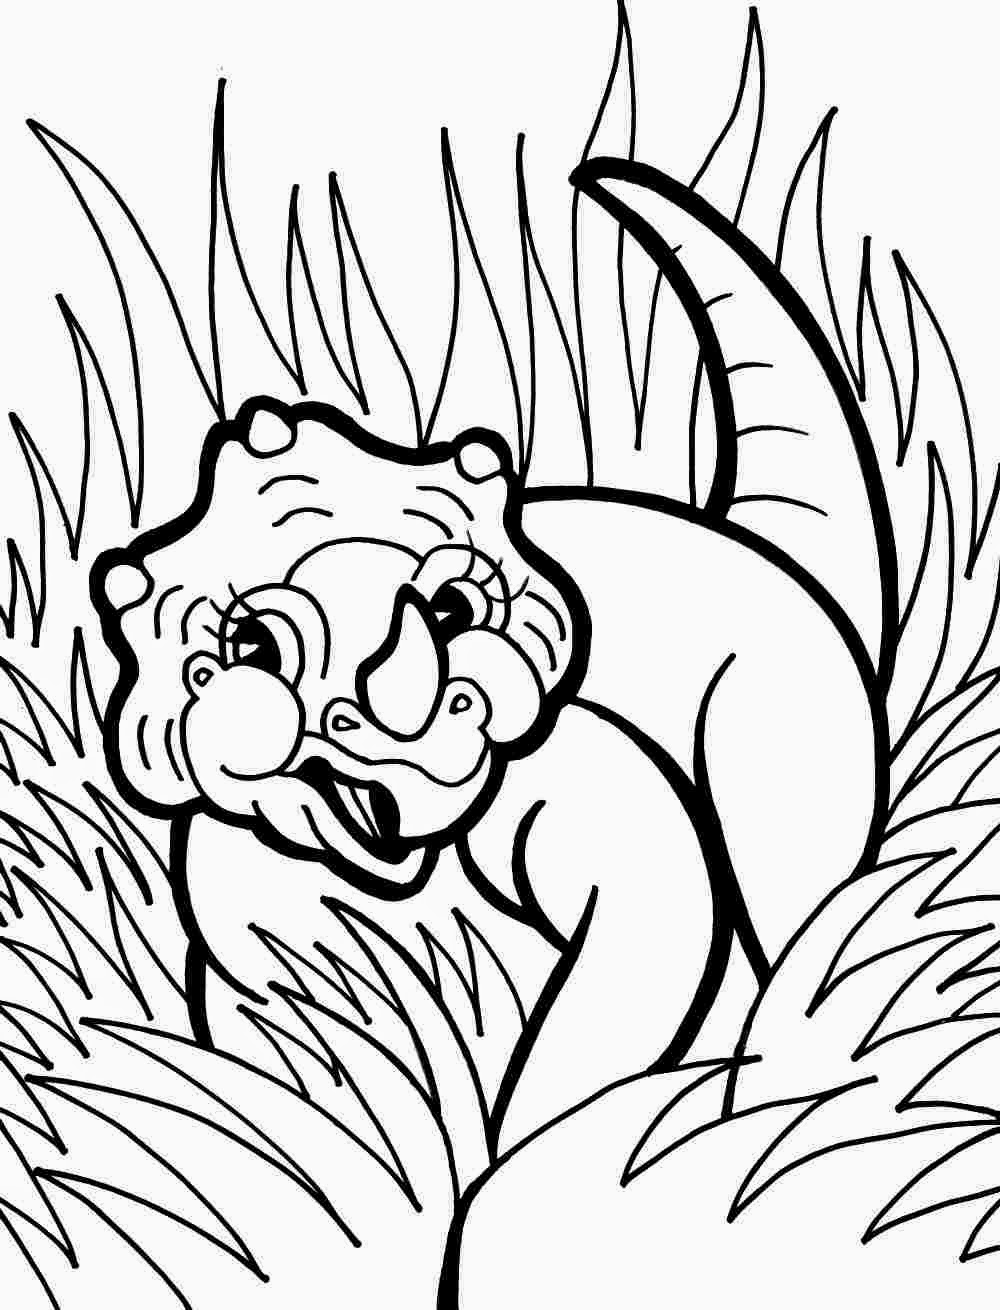 dinosaur coloring pages printable free coloring pages dinosaur free printable coloring pages coloring pages printable dinosaur free